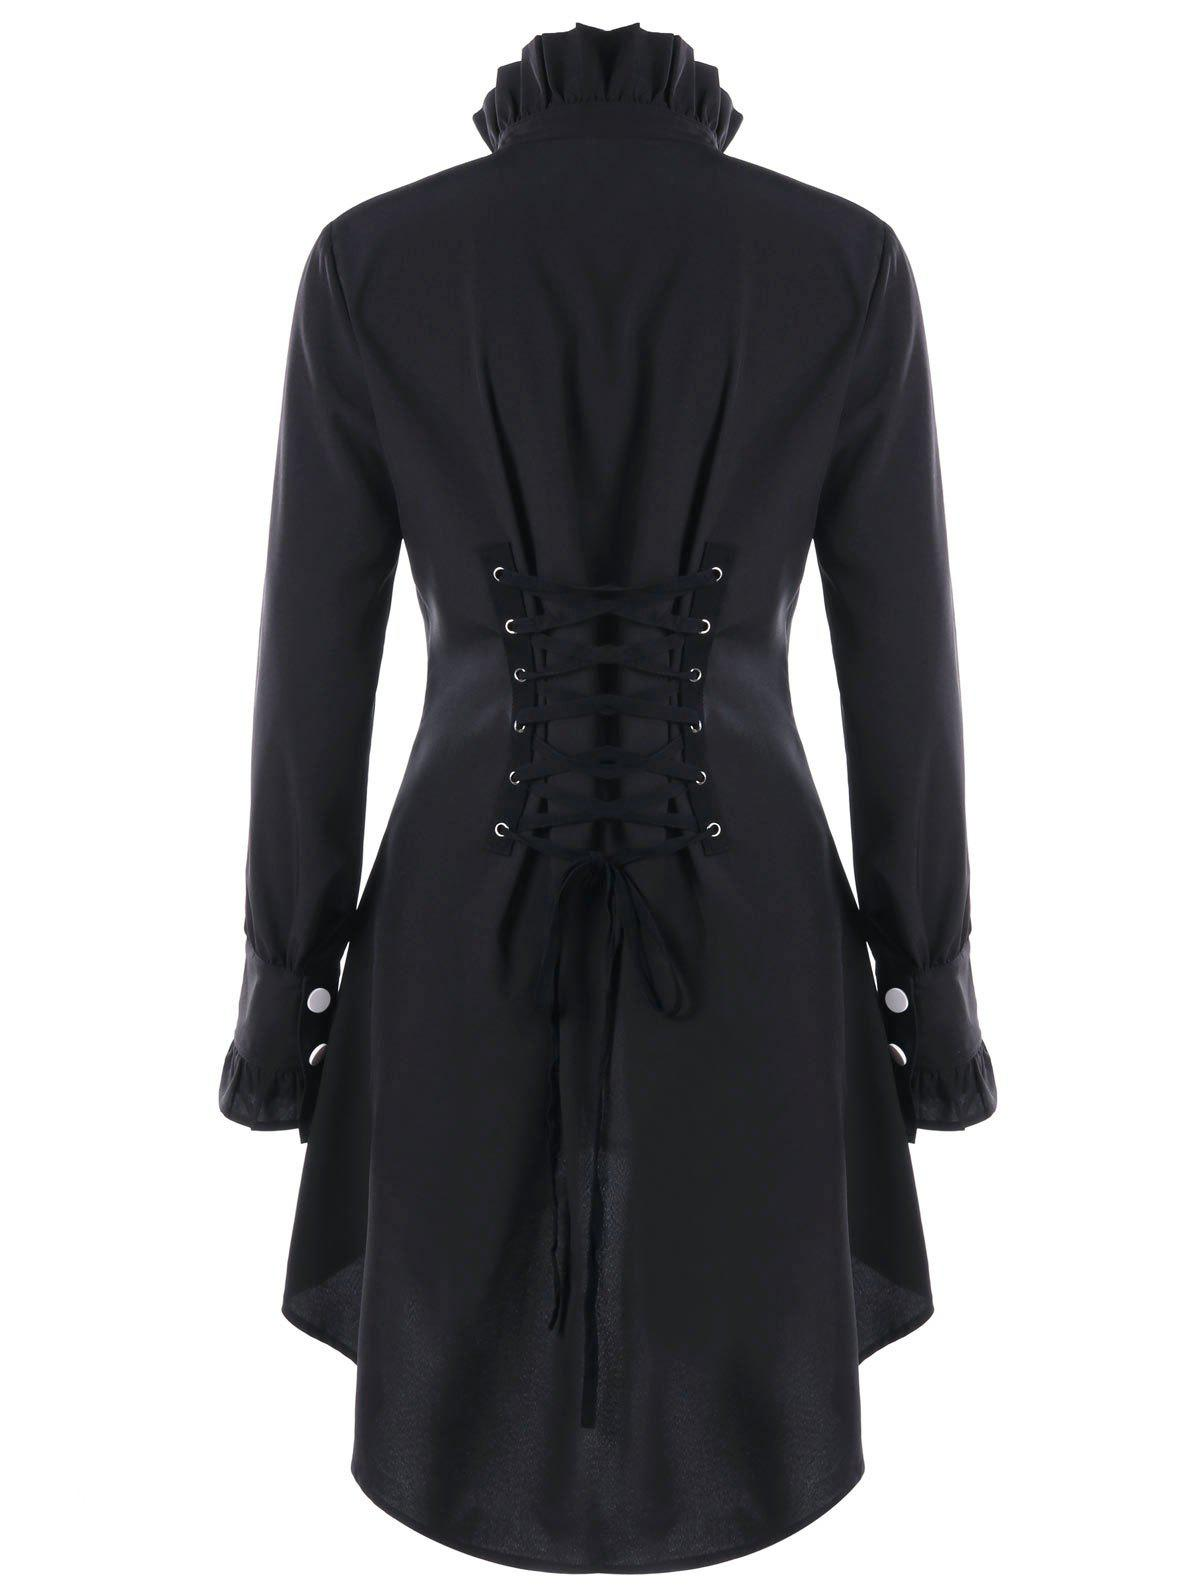 Ruffle Collar Lace Up Dip Hem Manteau - Noir L